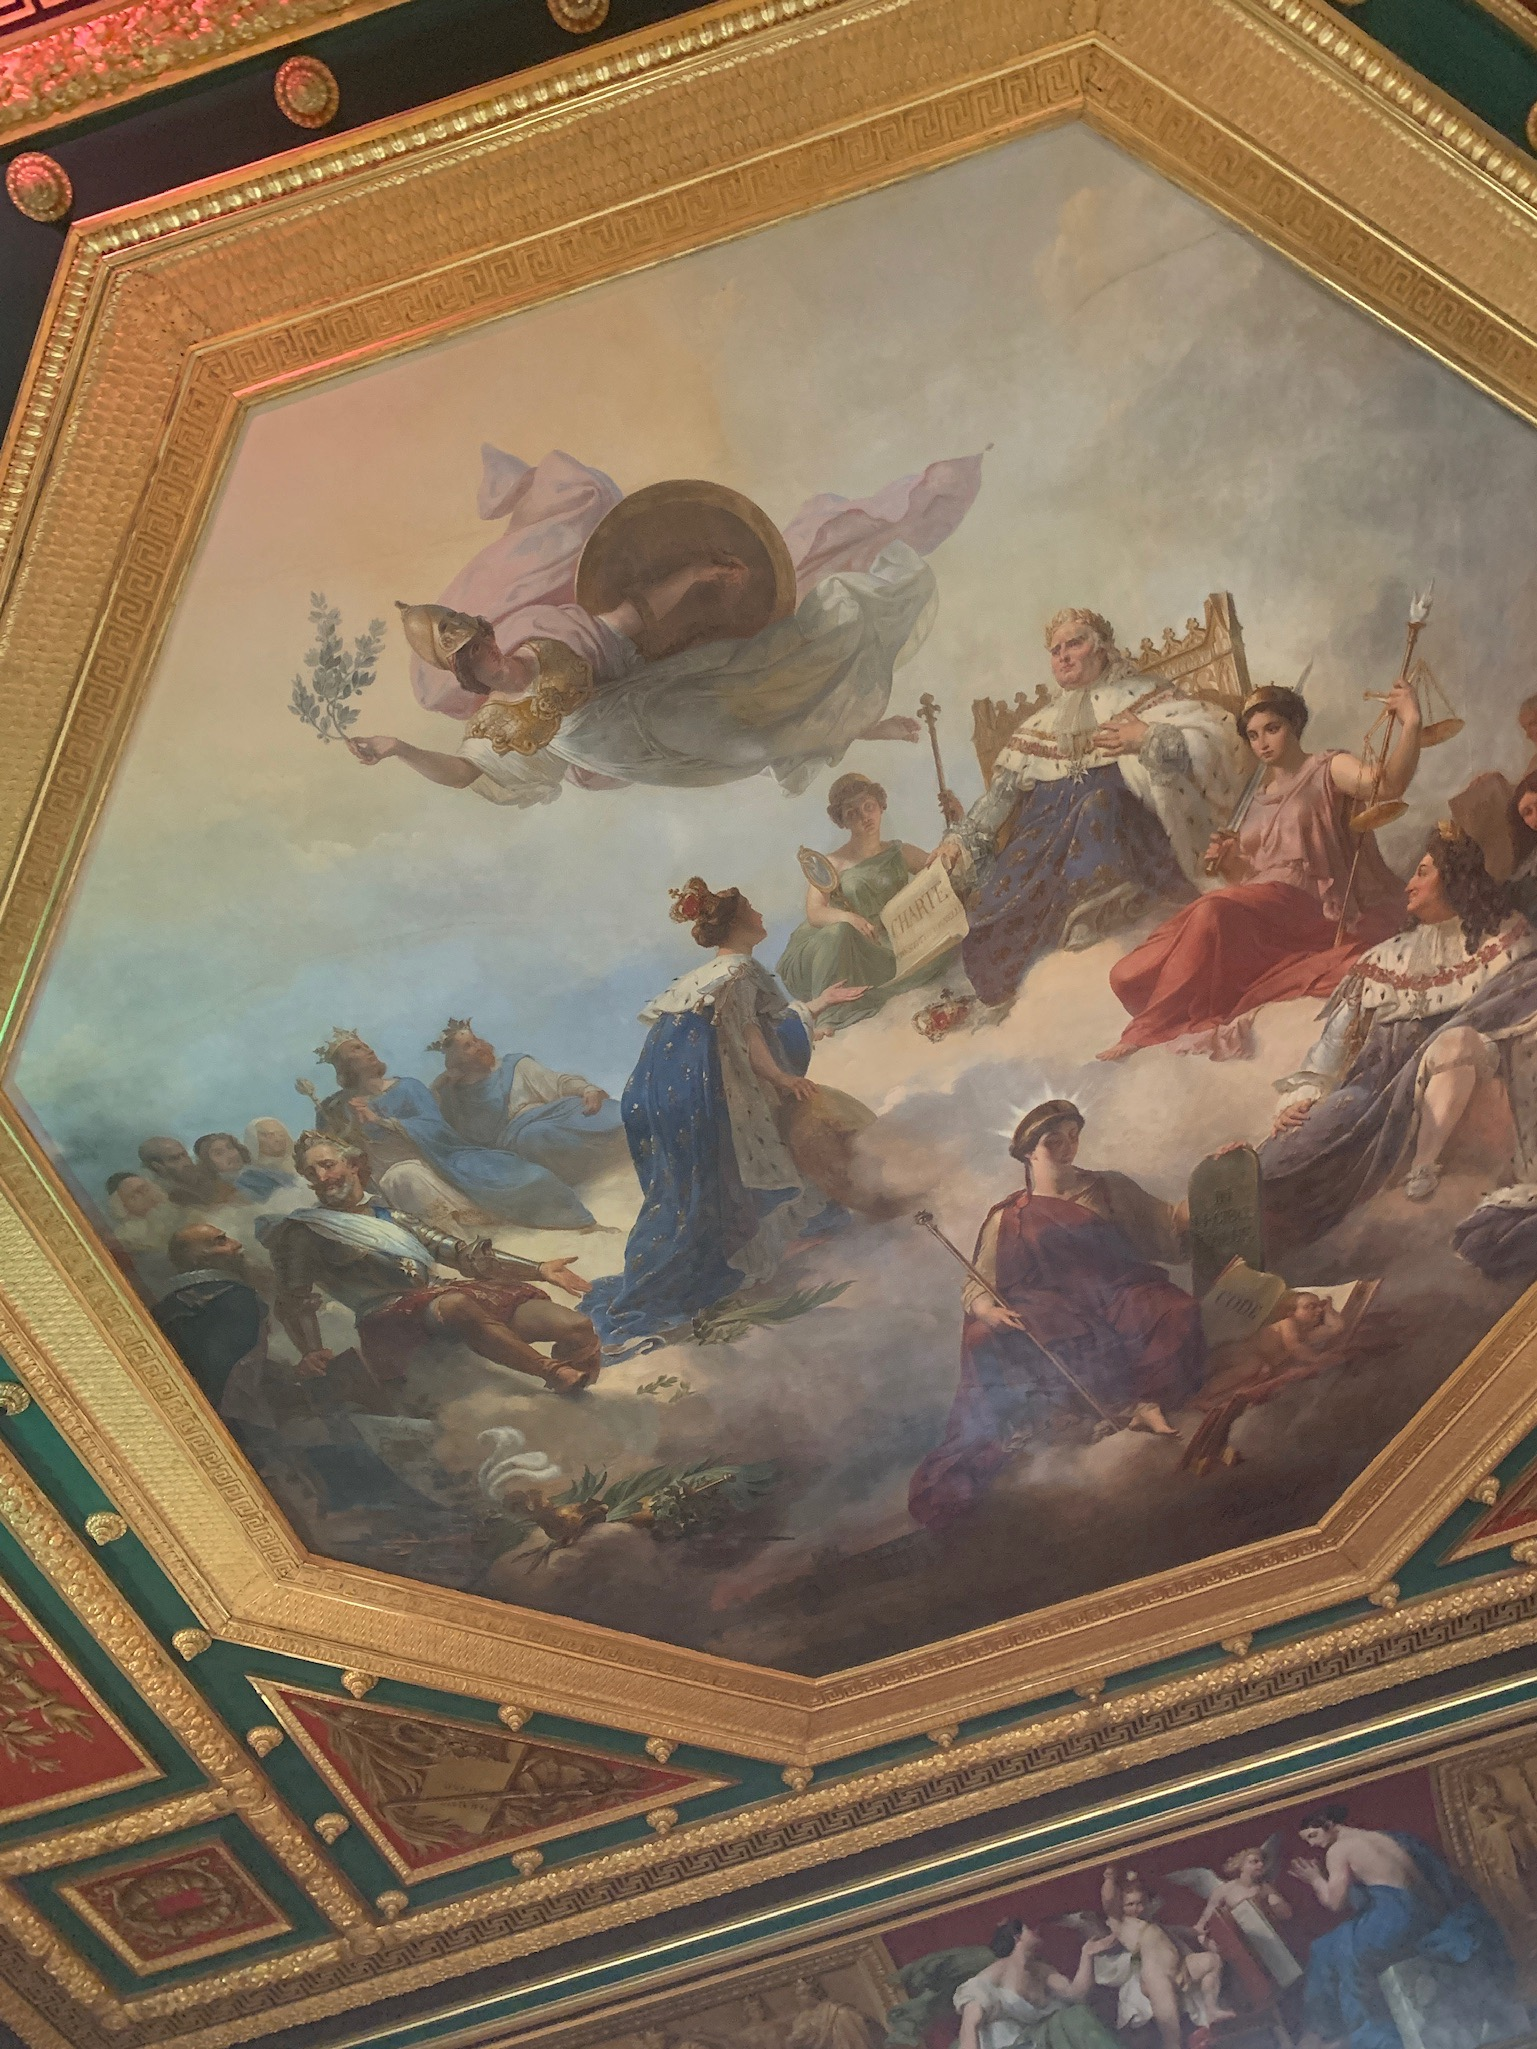 Decadent ceiling in the Louvre. (Click to see full image)